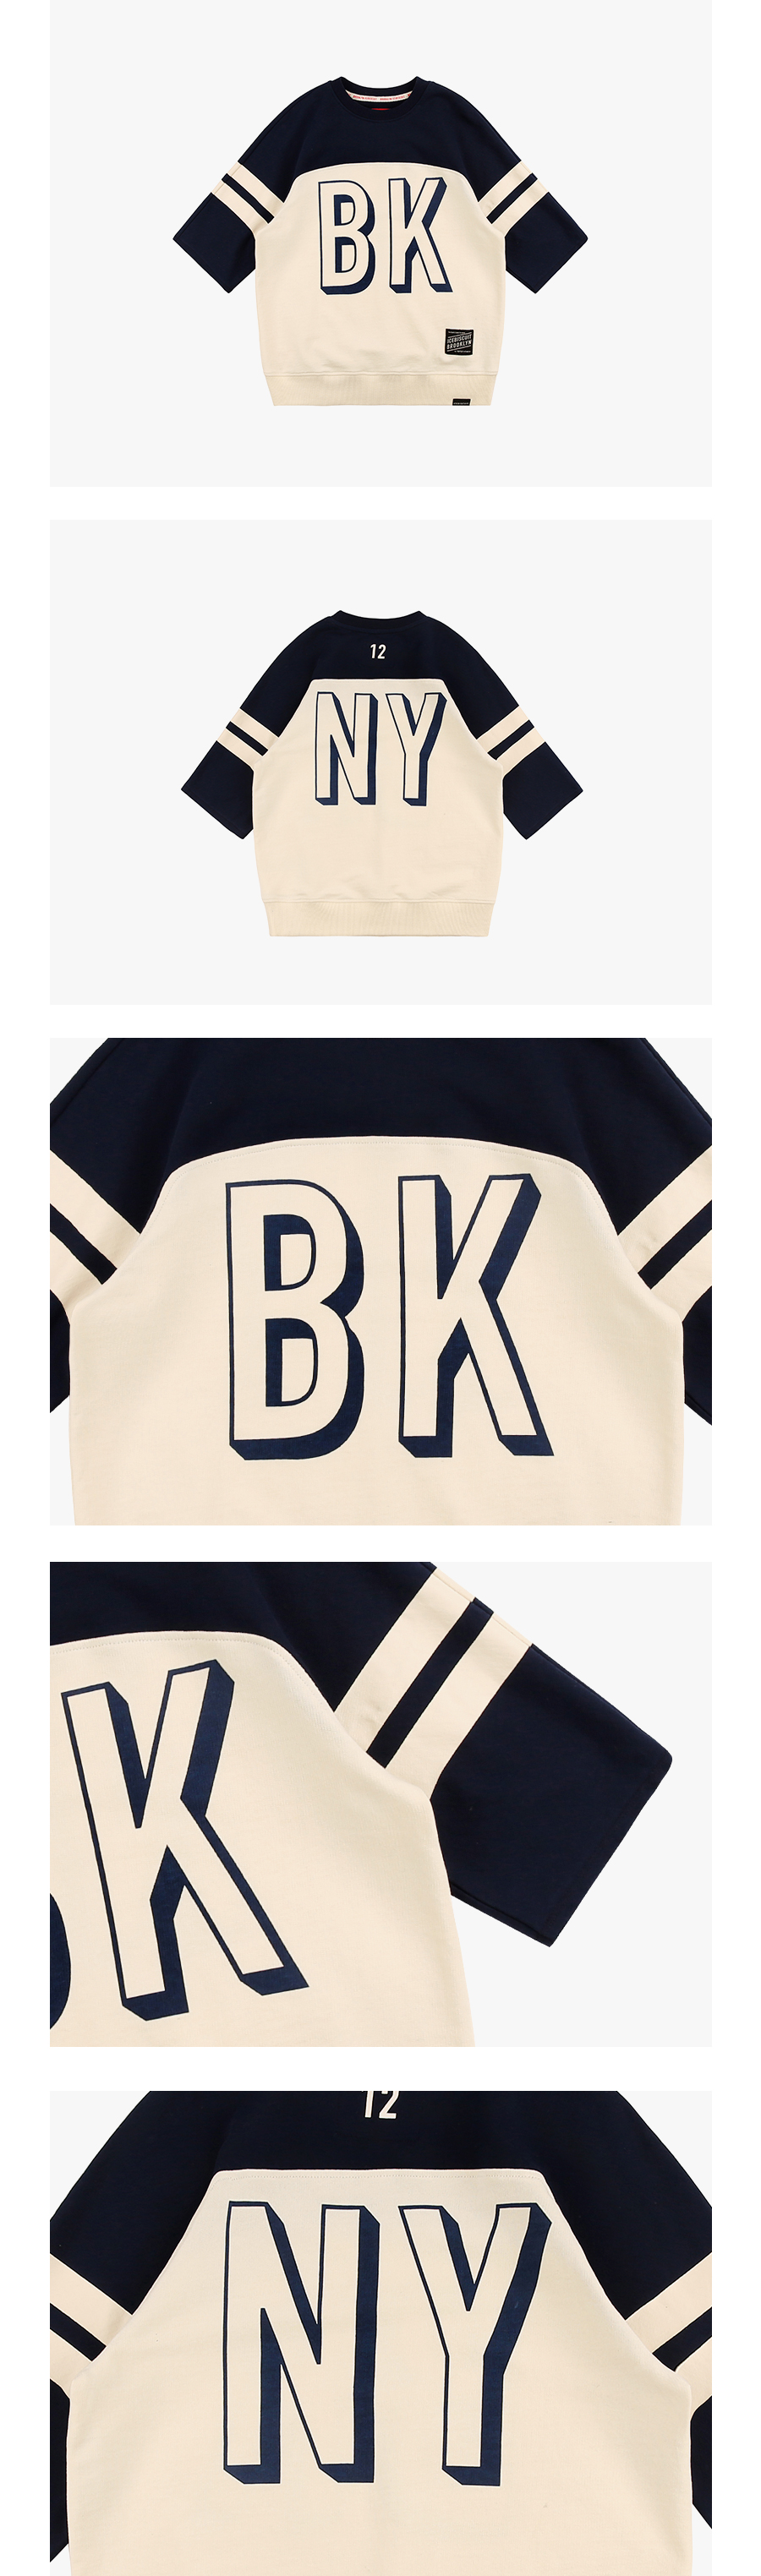 BKNY crop sweatshirt 상세 이미지